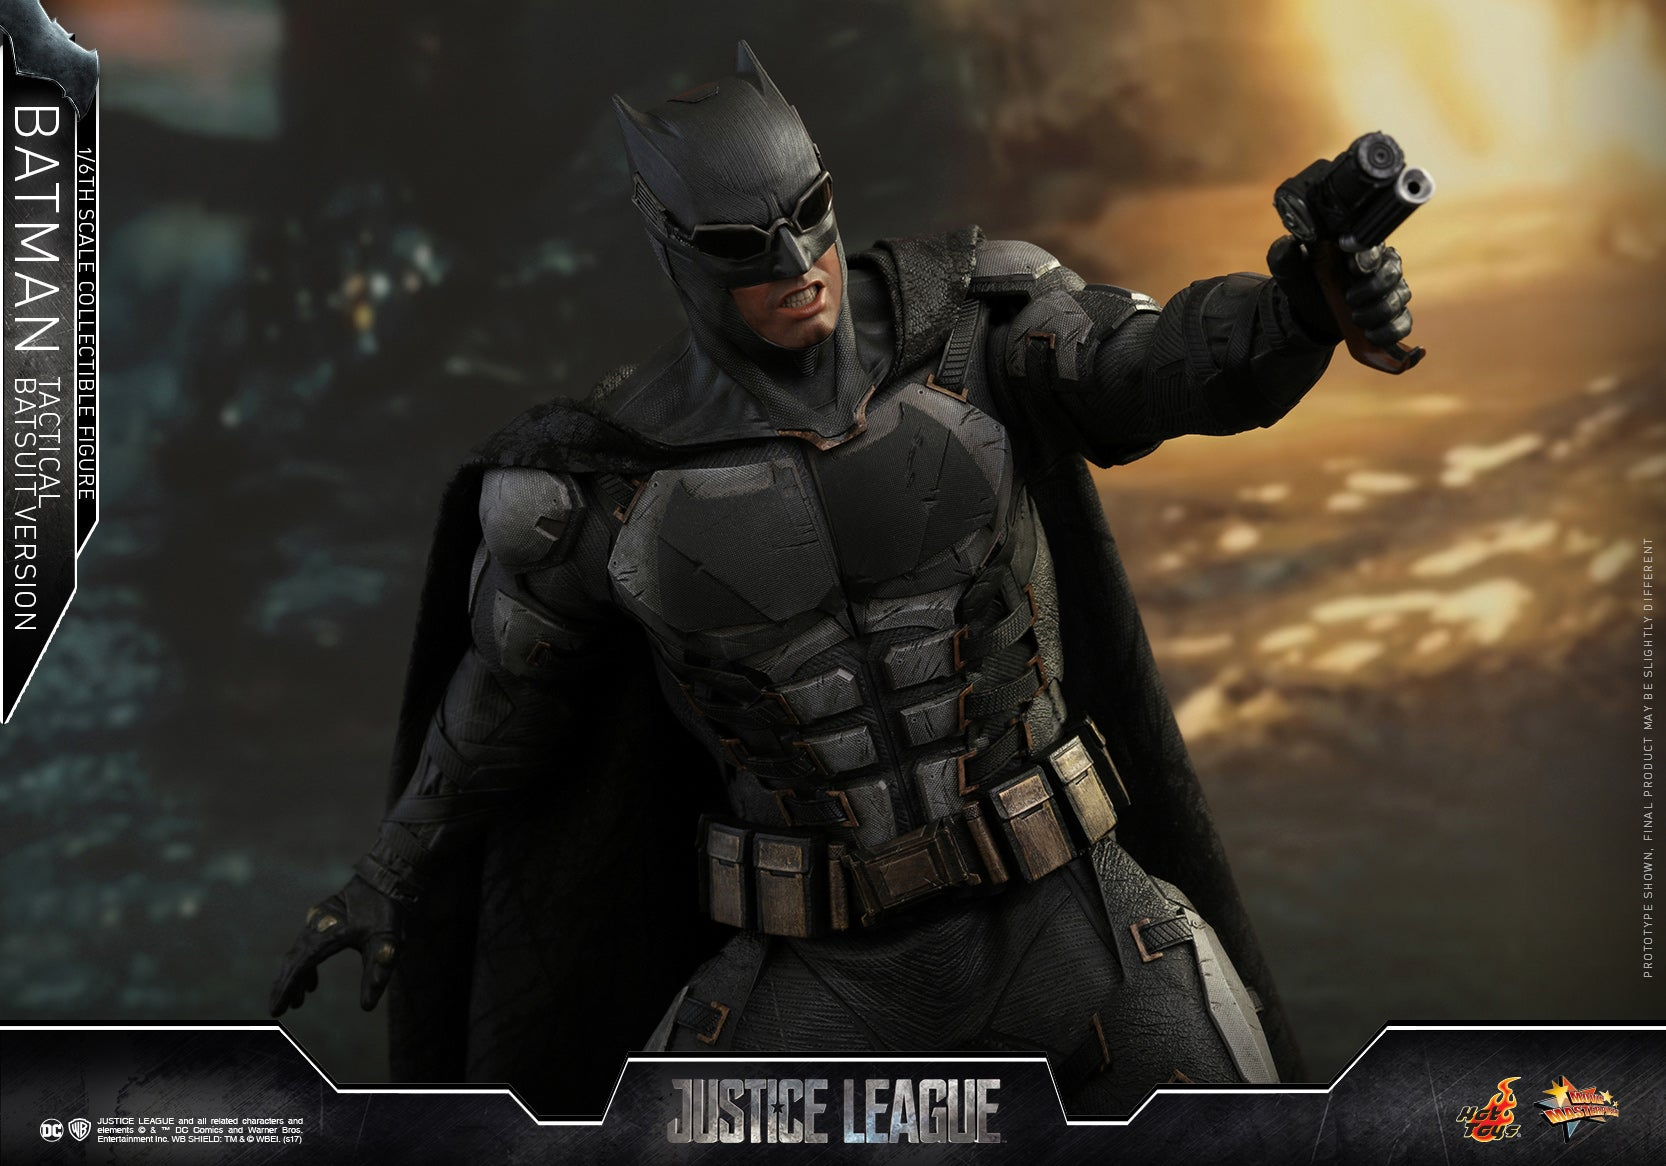 Hot-Toys---Justice-League---Batman-(Tactical-Batsuit-Version)-Collectible-Figure PR15